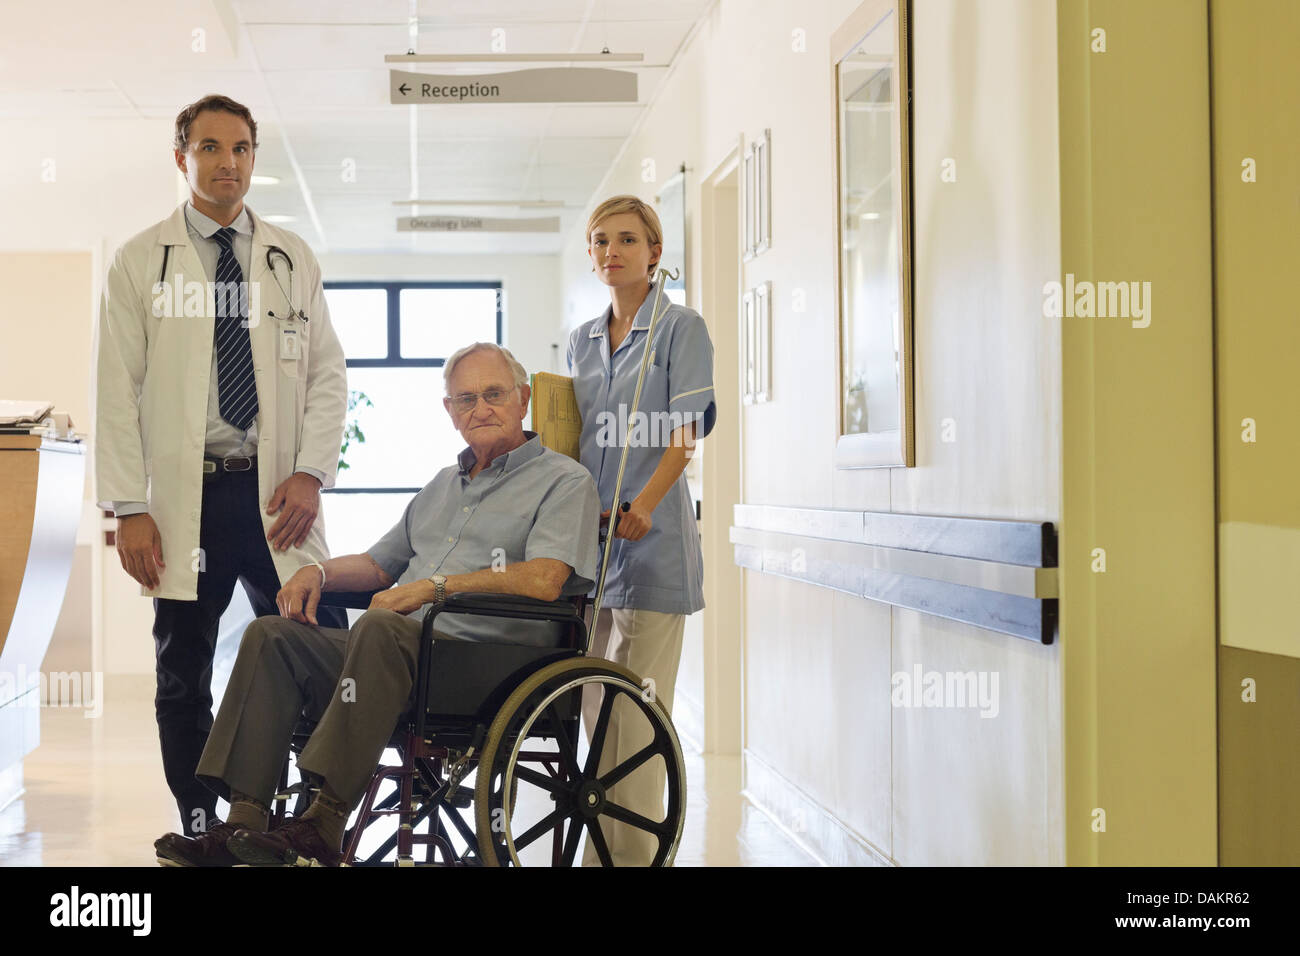 Doctor and nurse with older patient in hospital - Stock Image